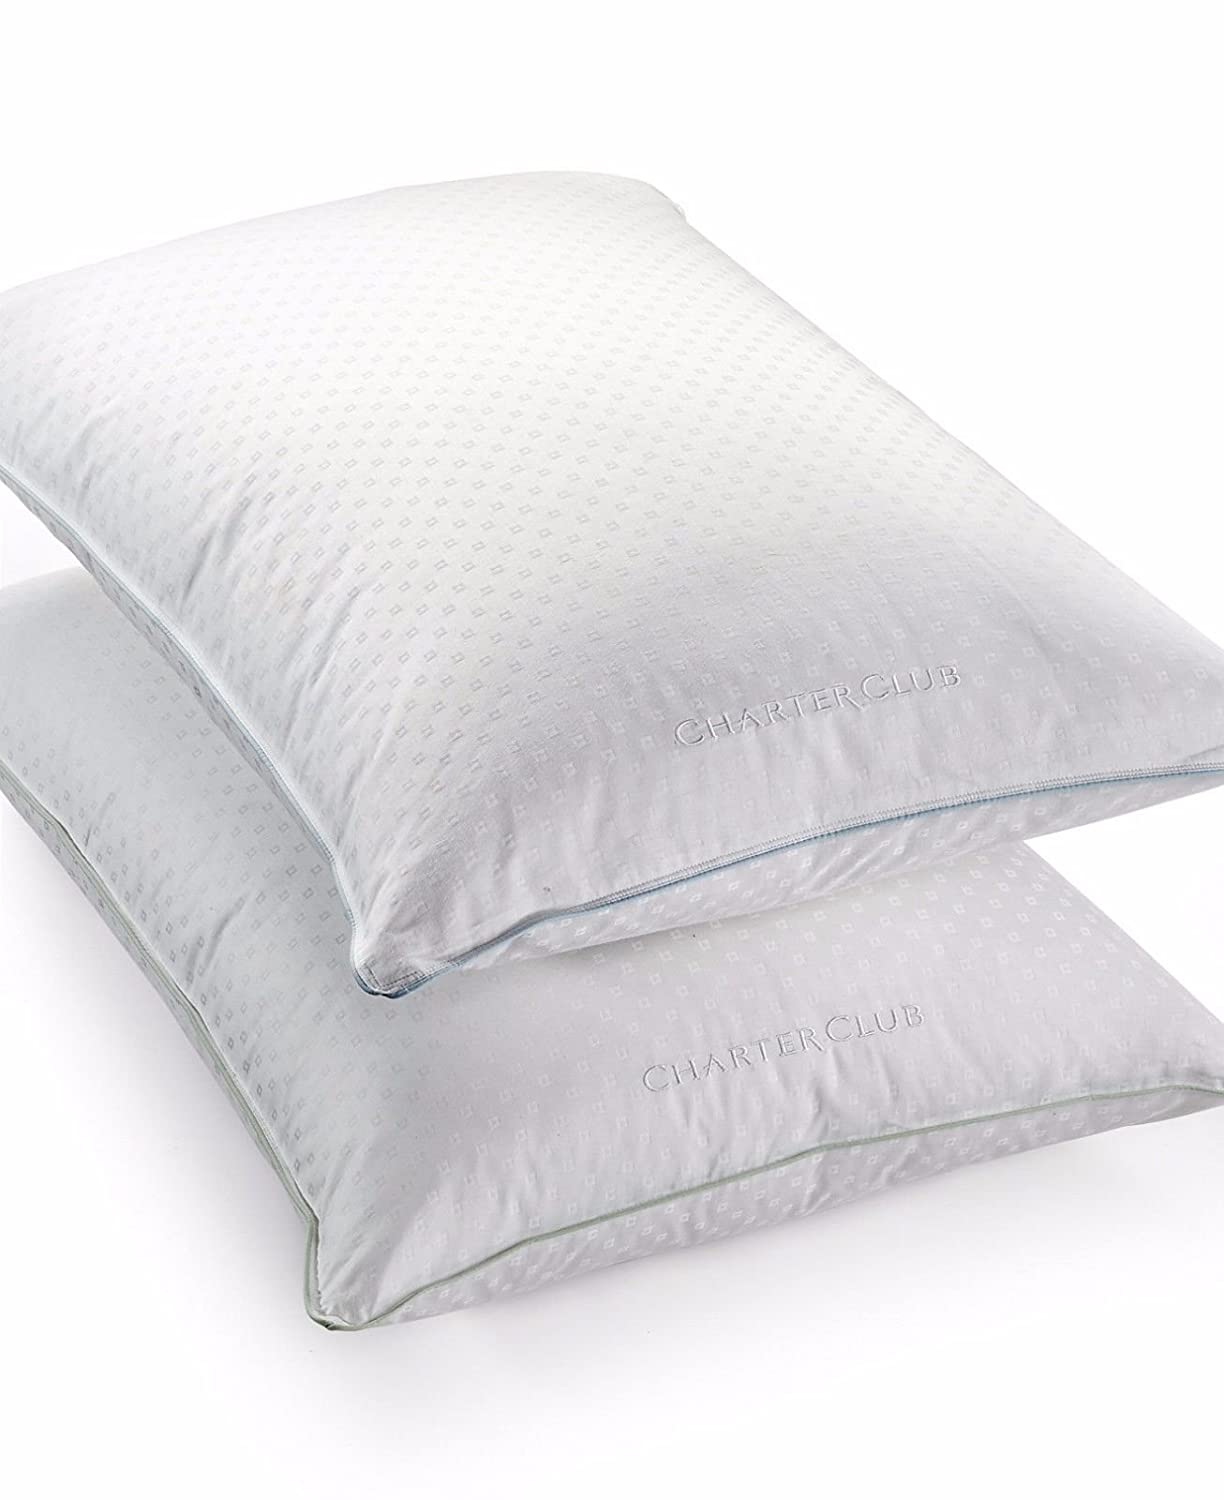 Amazon.com: Charter Club Vail Collection Down Standard/Queen Pillow Soft: Home & Kitchen